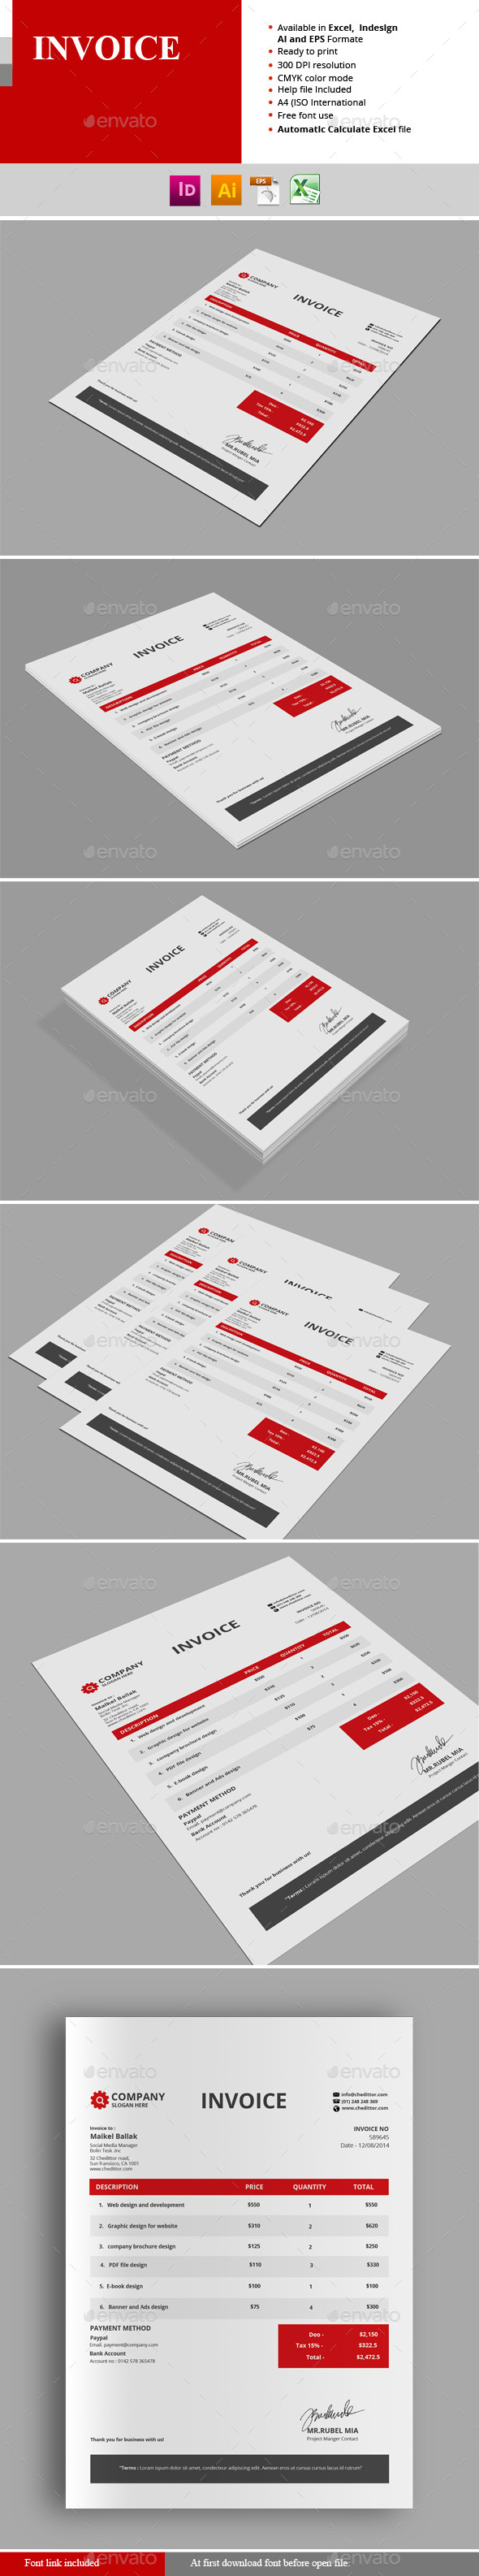 GraphicRiver Invoice 11010110